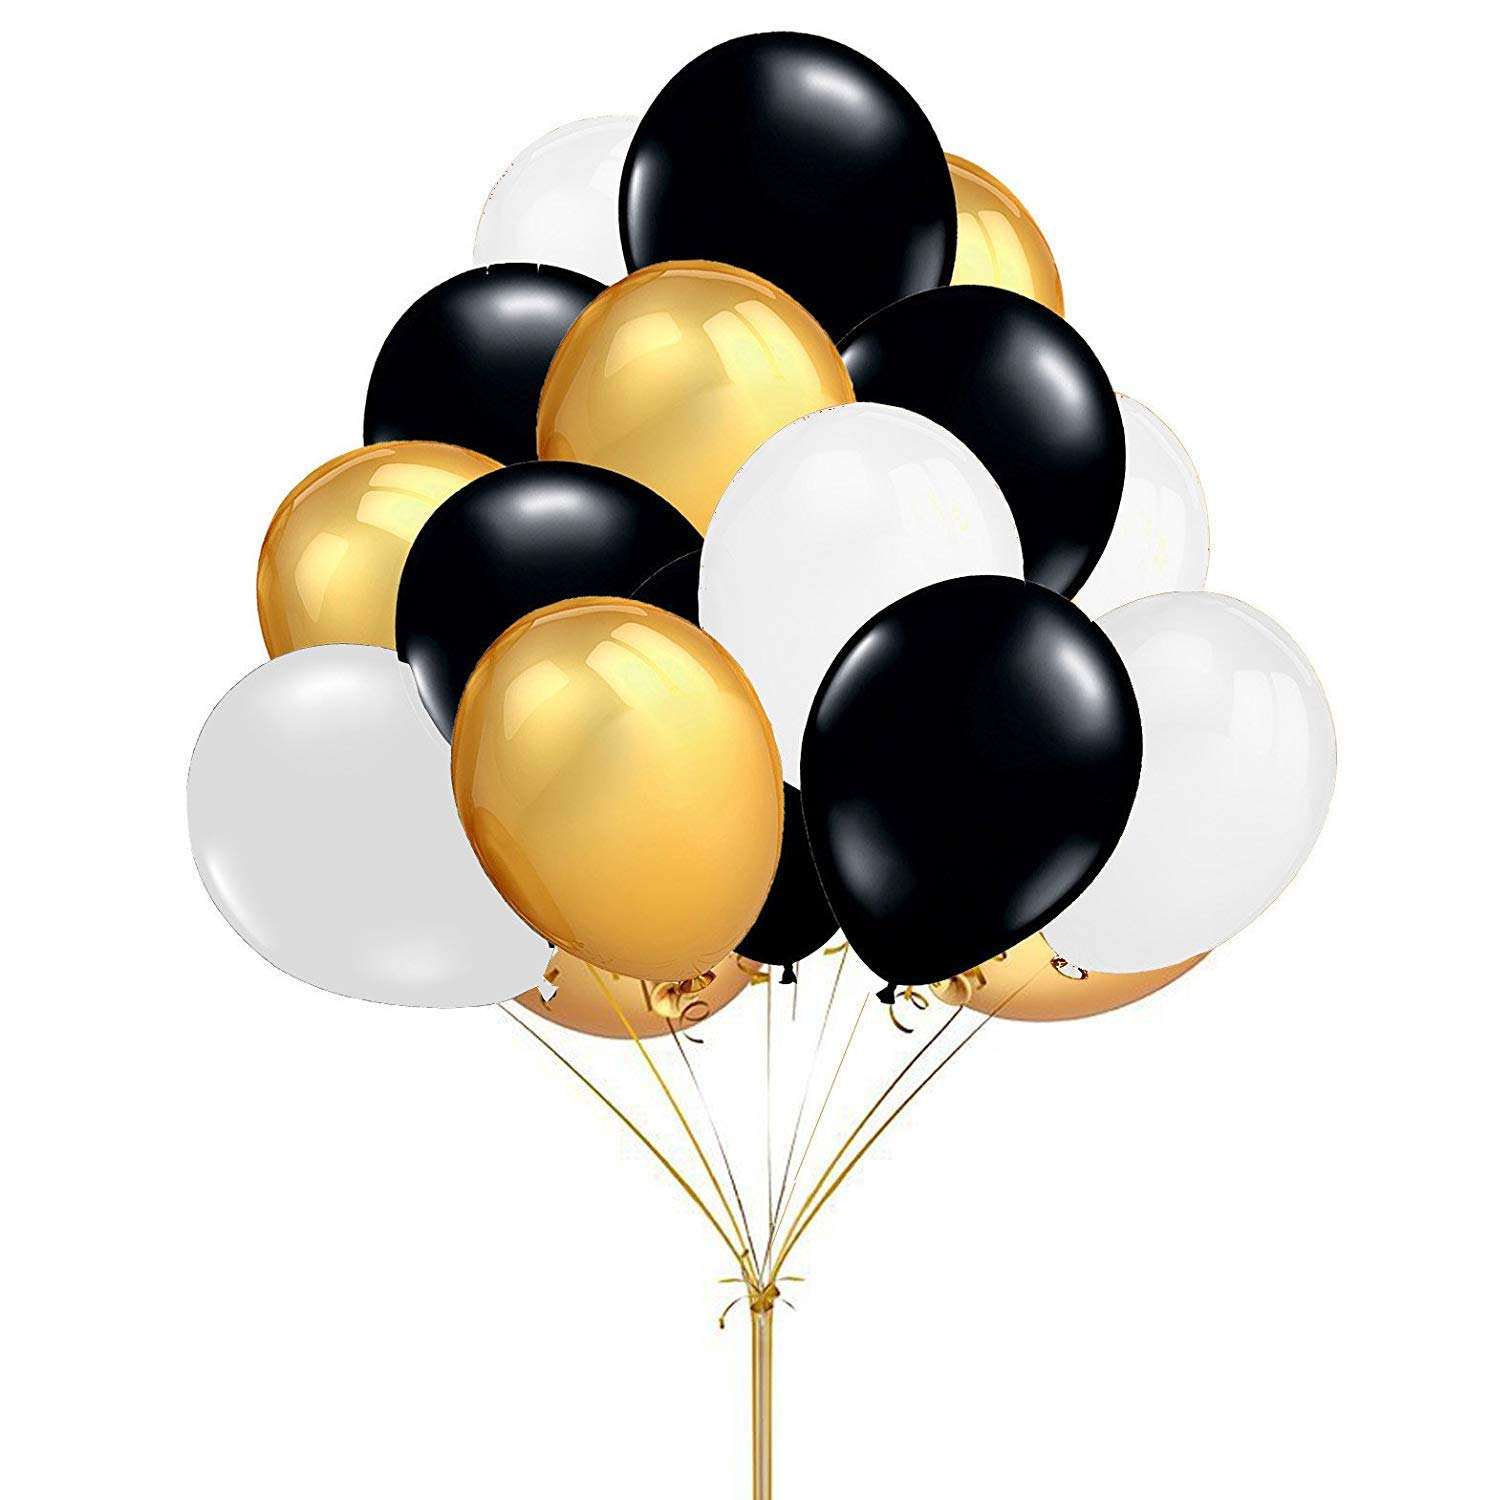 METABLE 100pcs/pack Gold Black White Round Latex Balloons for Decoration your party wedding birthday all kinds of